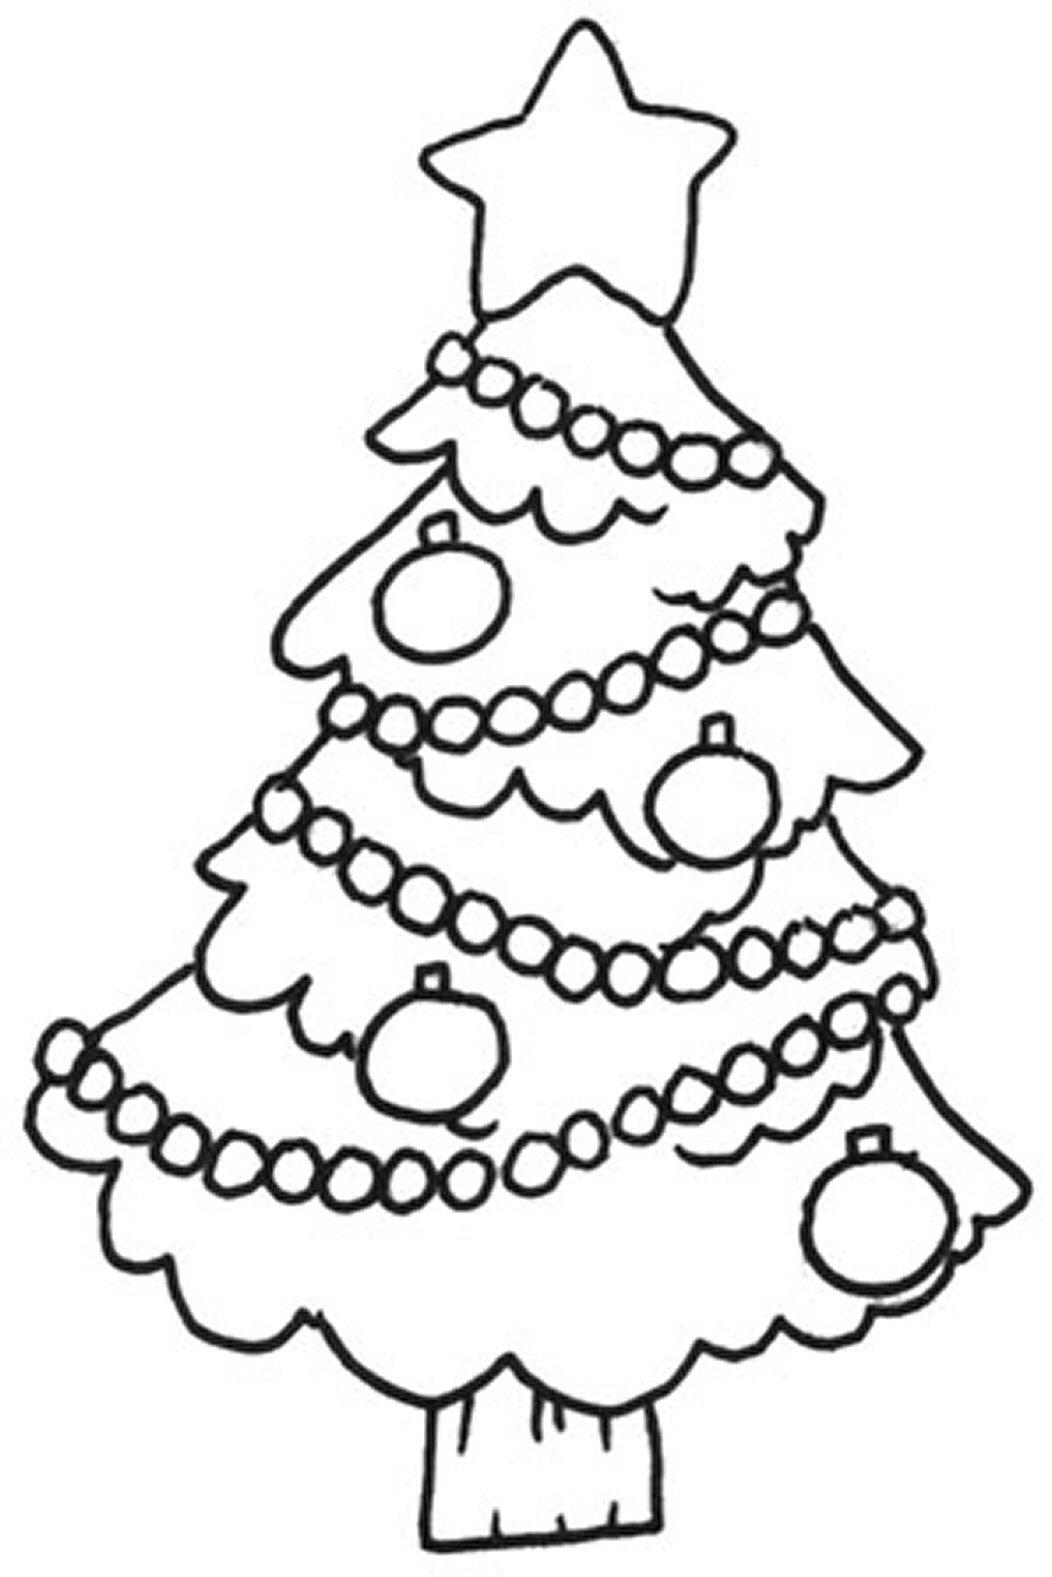 Simple Coloring Pages (1) Coloring Kids - Coloring Kids